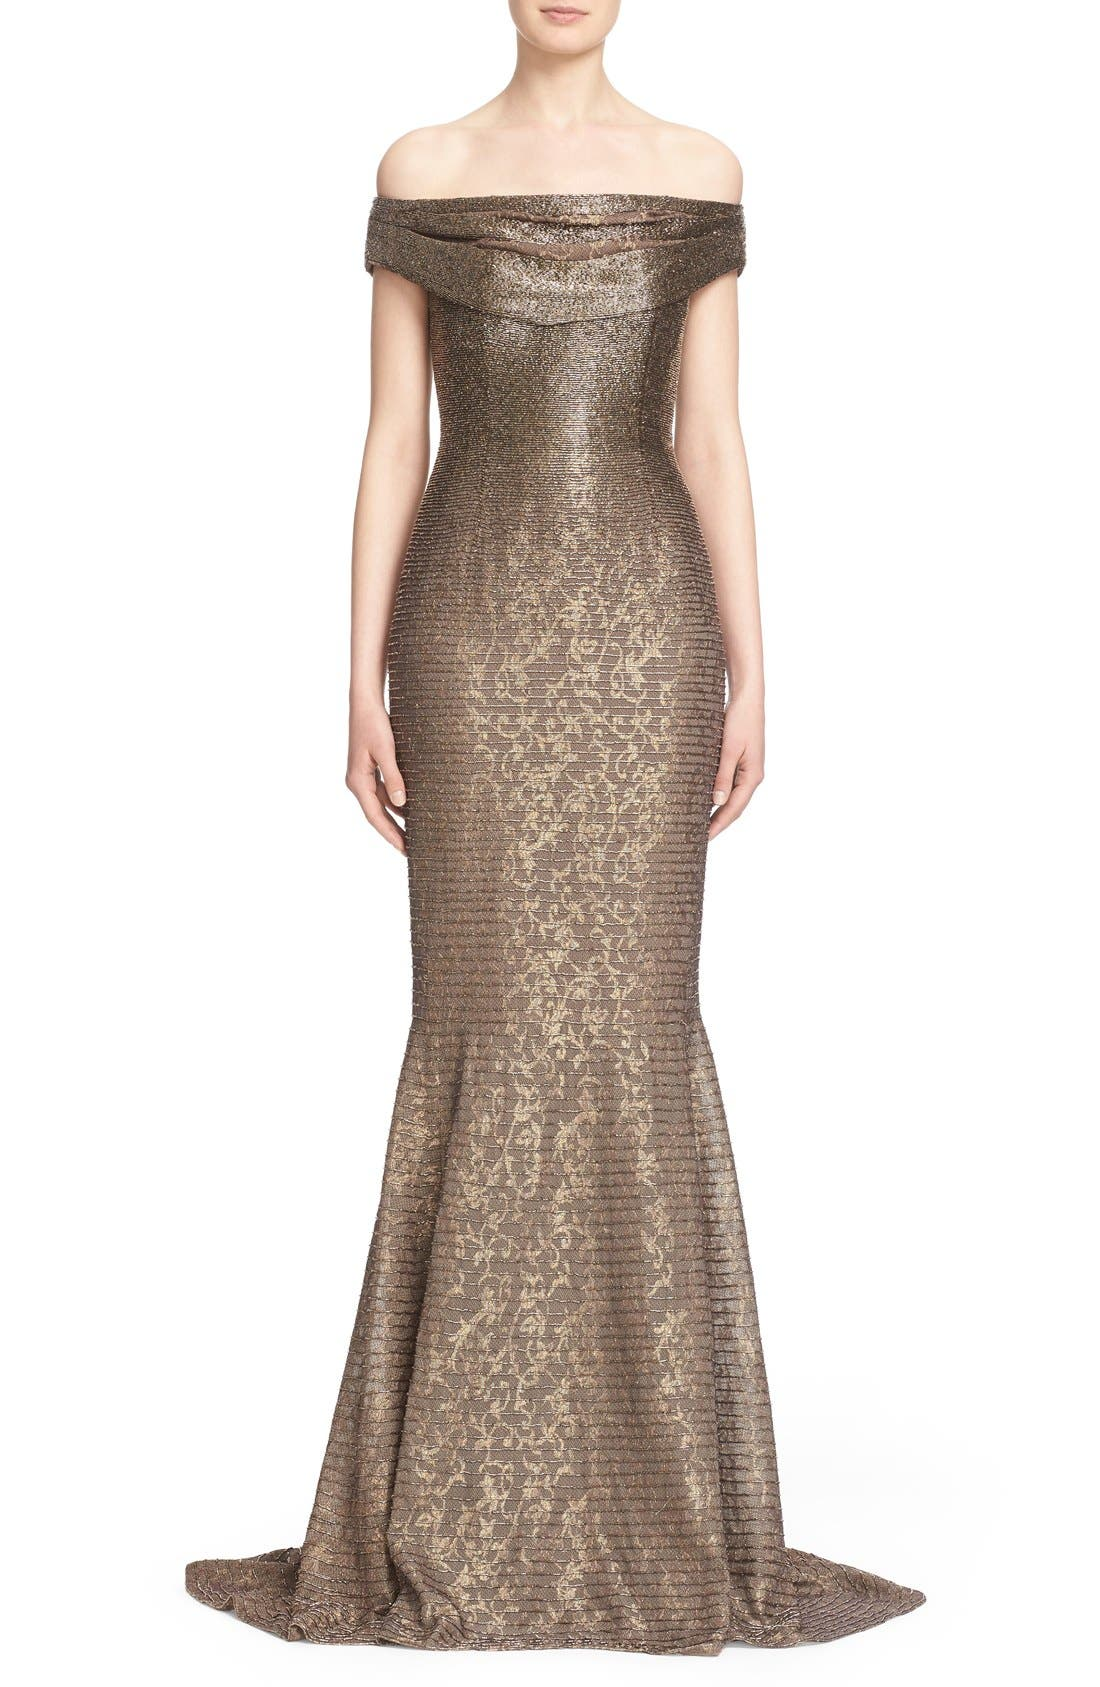 CARMEN MARC VALVO COUTURE Beaded Off the Shoulder Lace Mermaid Gown, Main, color, 710